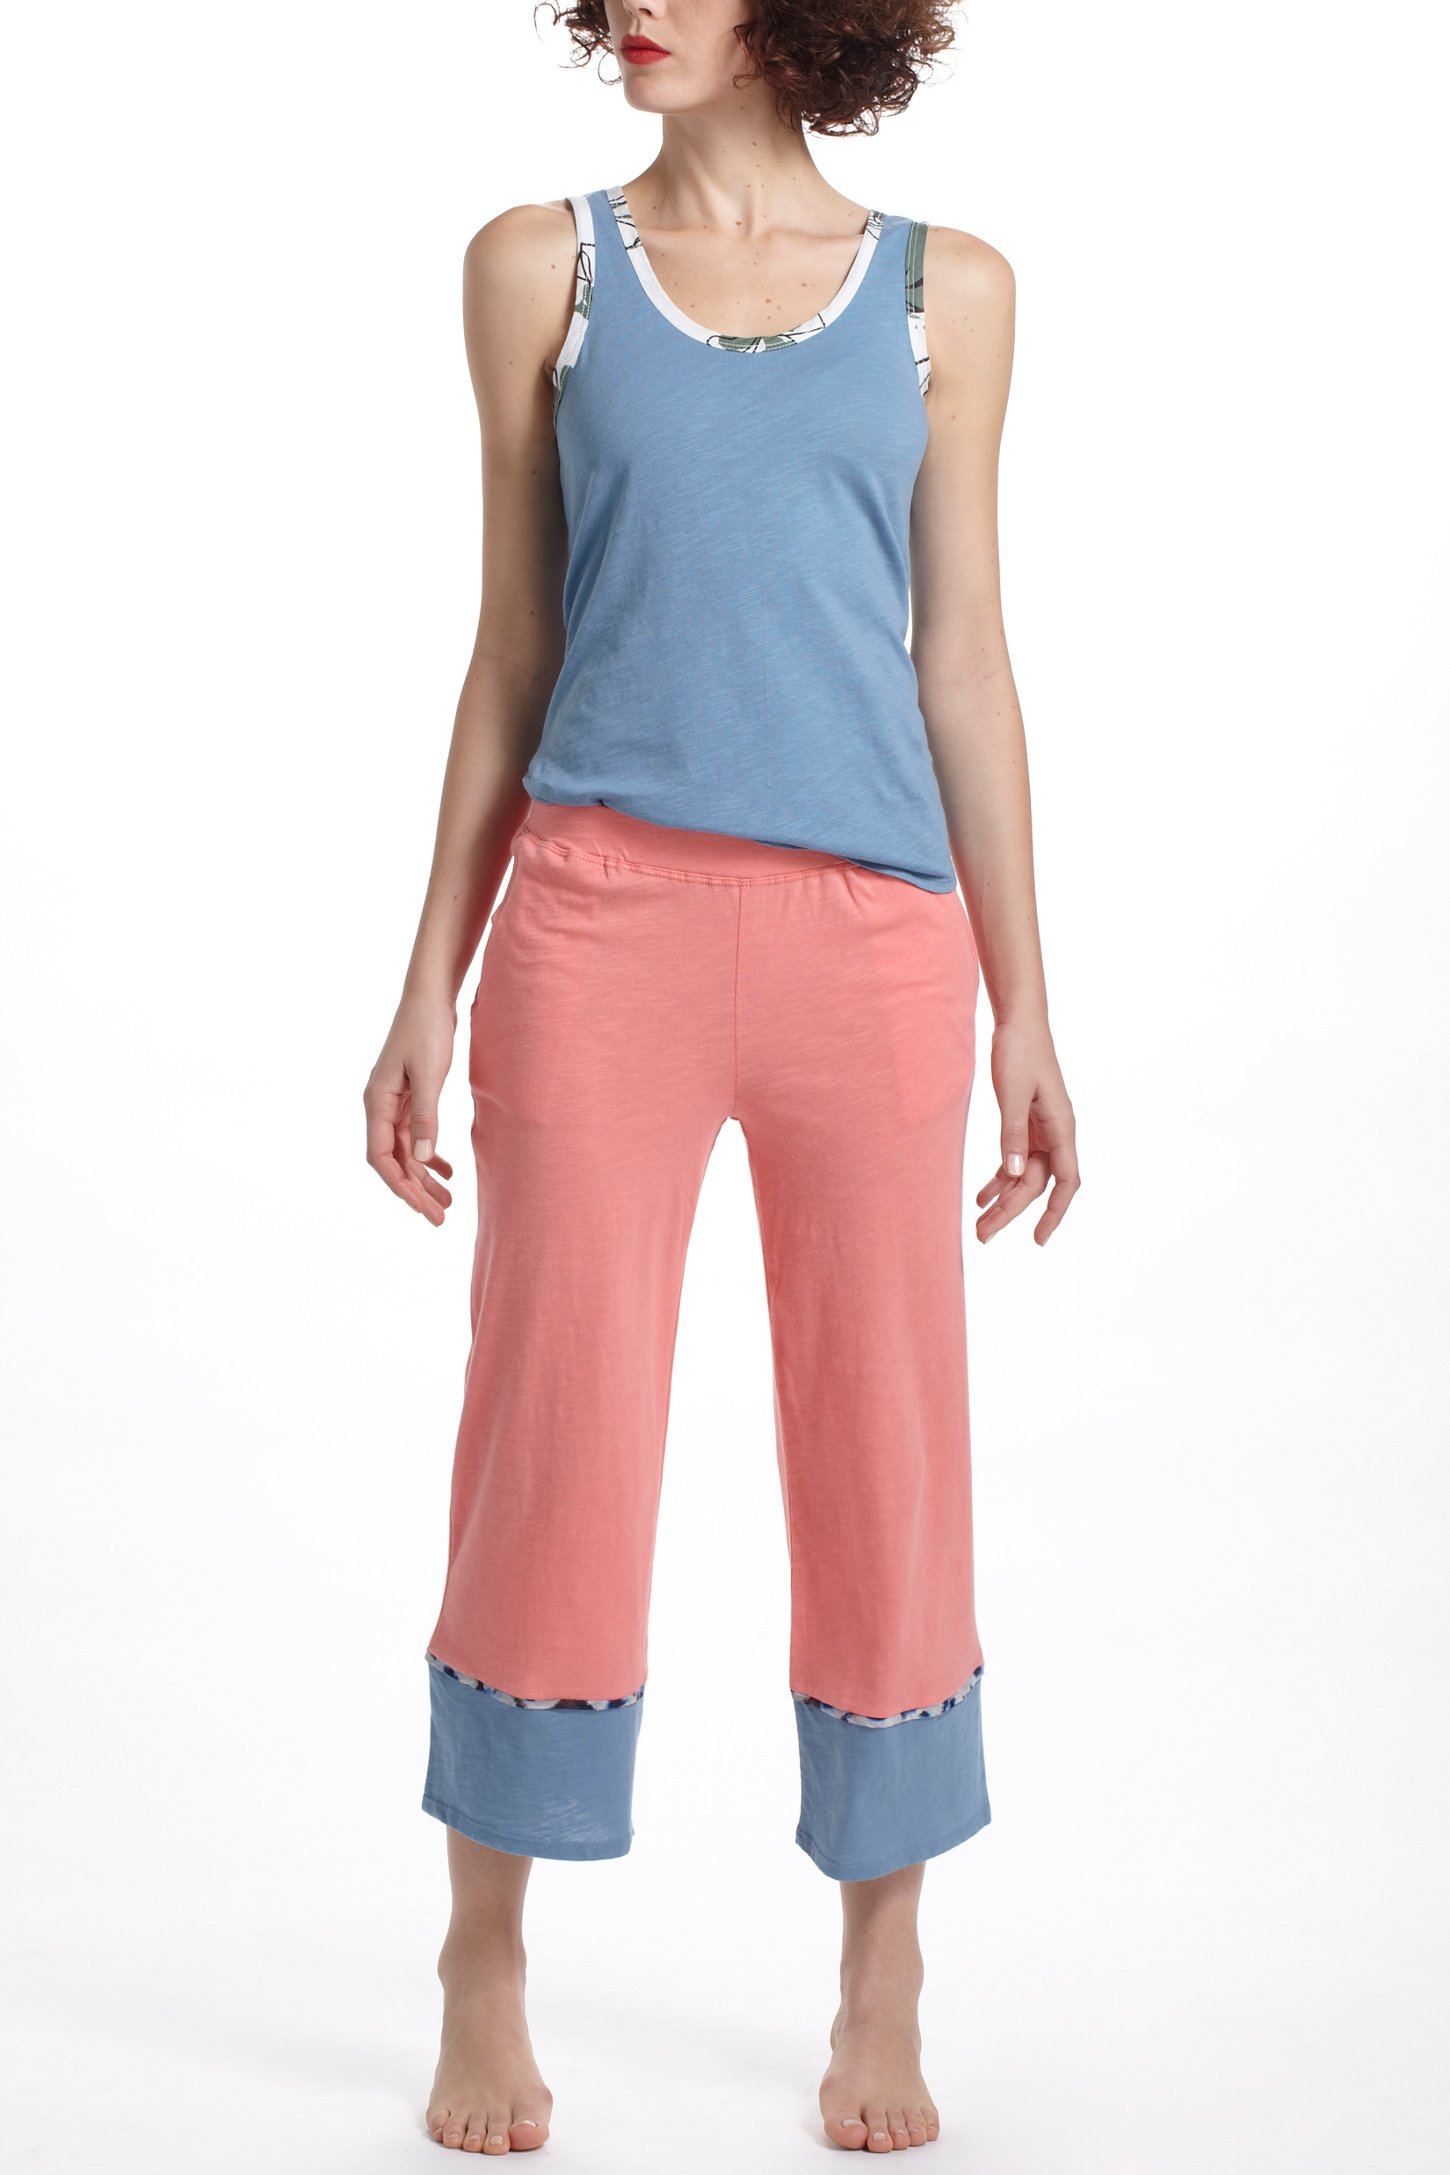 Lyst Anthropologie Cropped Colorblocked Loungers In Pink